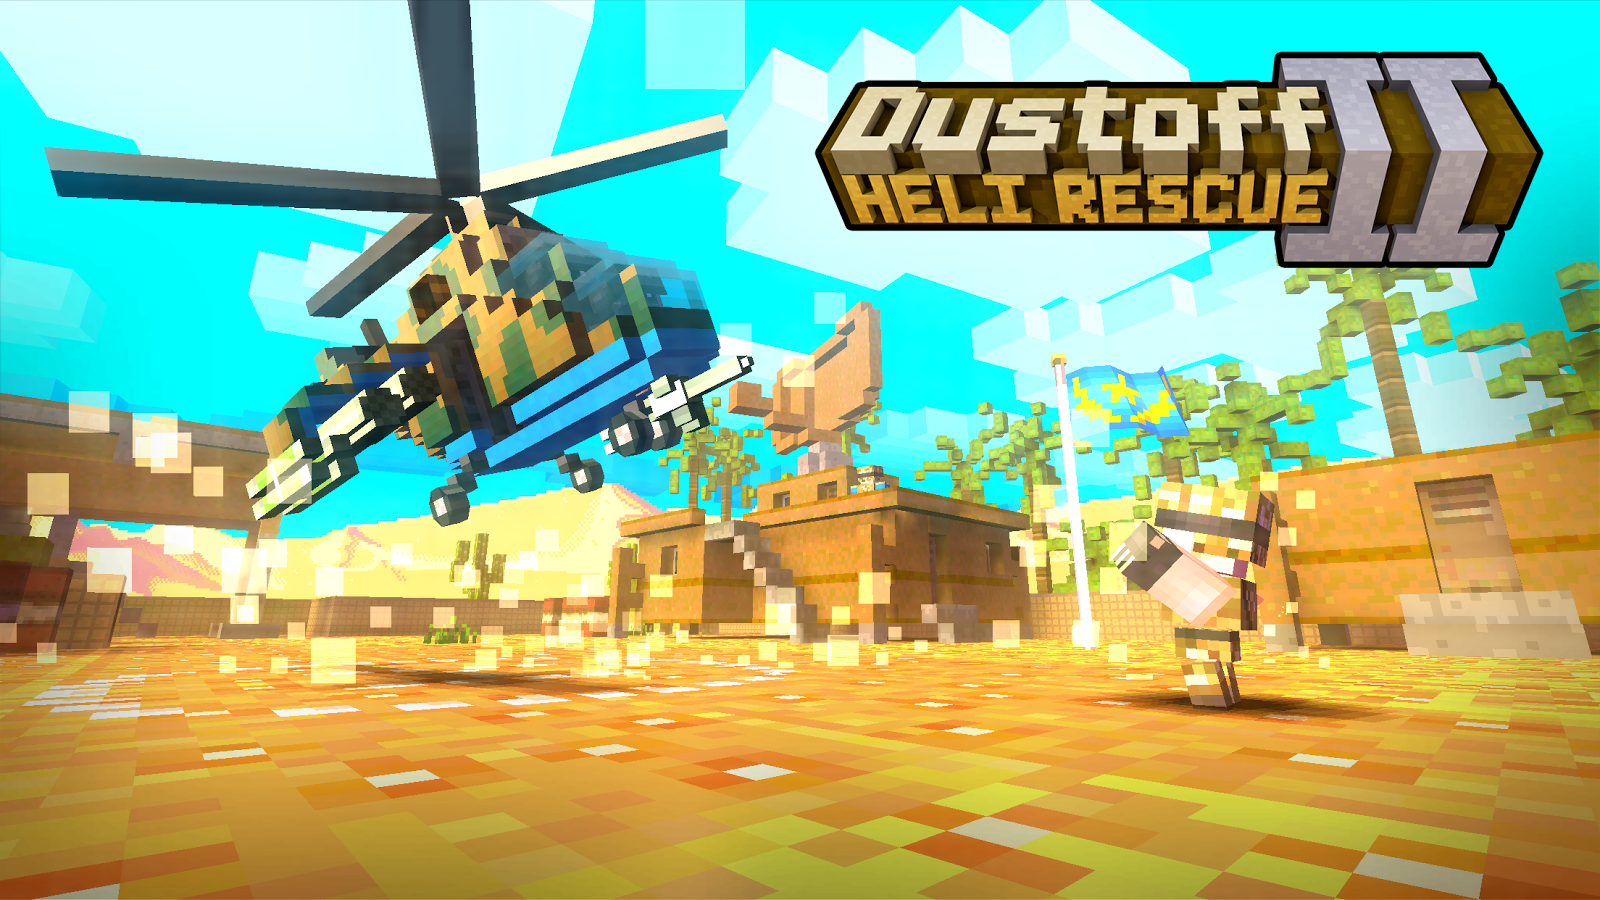 Dustoff Heli Rescue 2 Screenshot 0